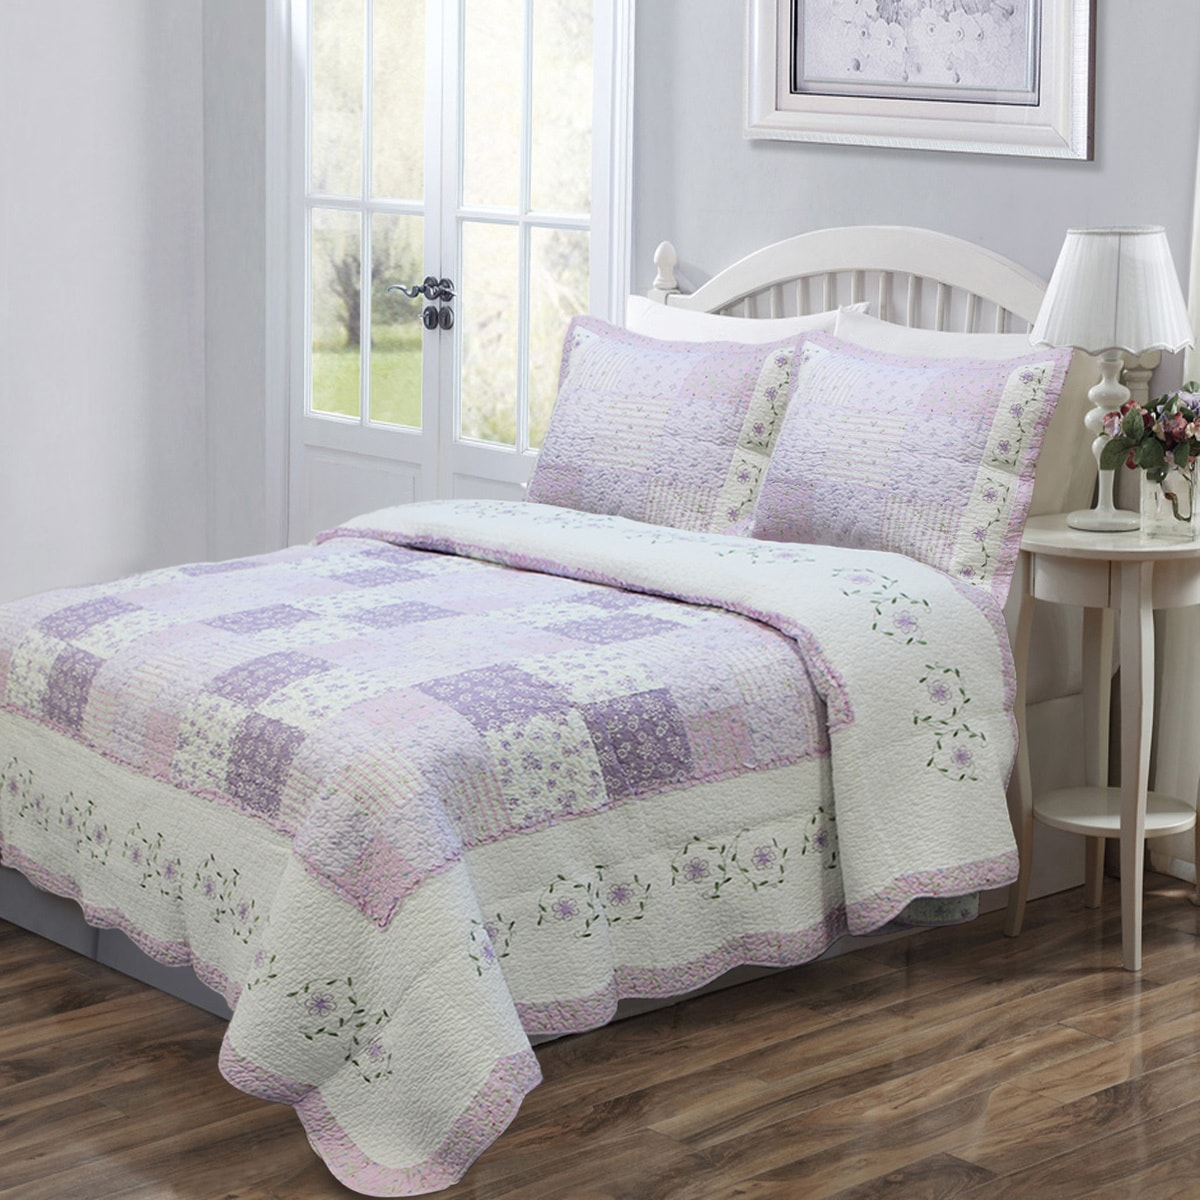 Cozy Line Love of Lilac Patckwork Quilt and Sham Set - Free ... : lilac quilt cover - Adamdwight.com